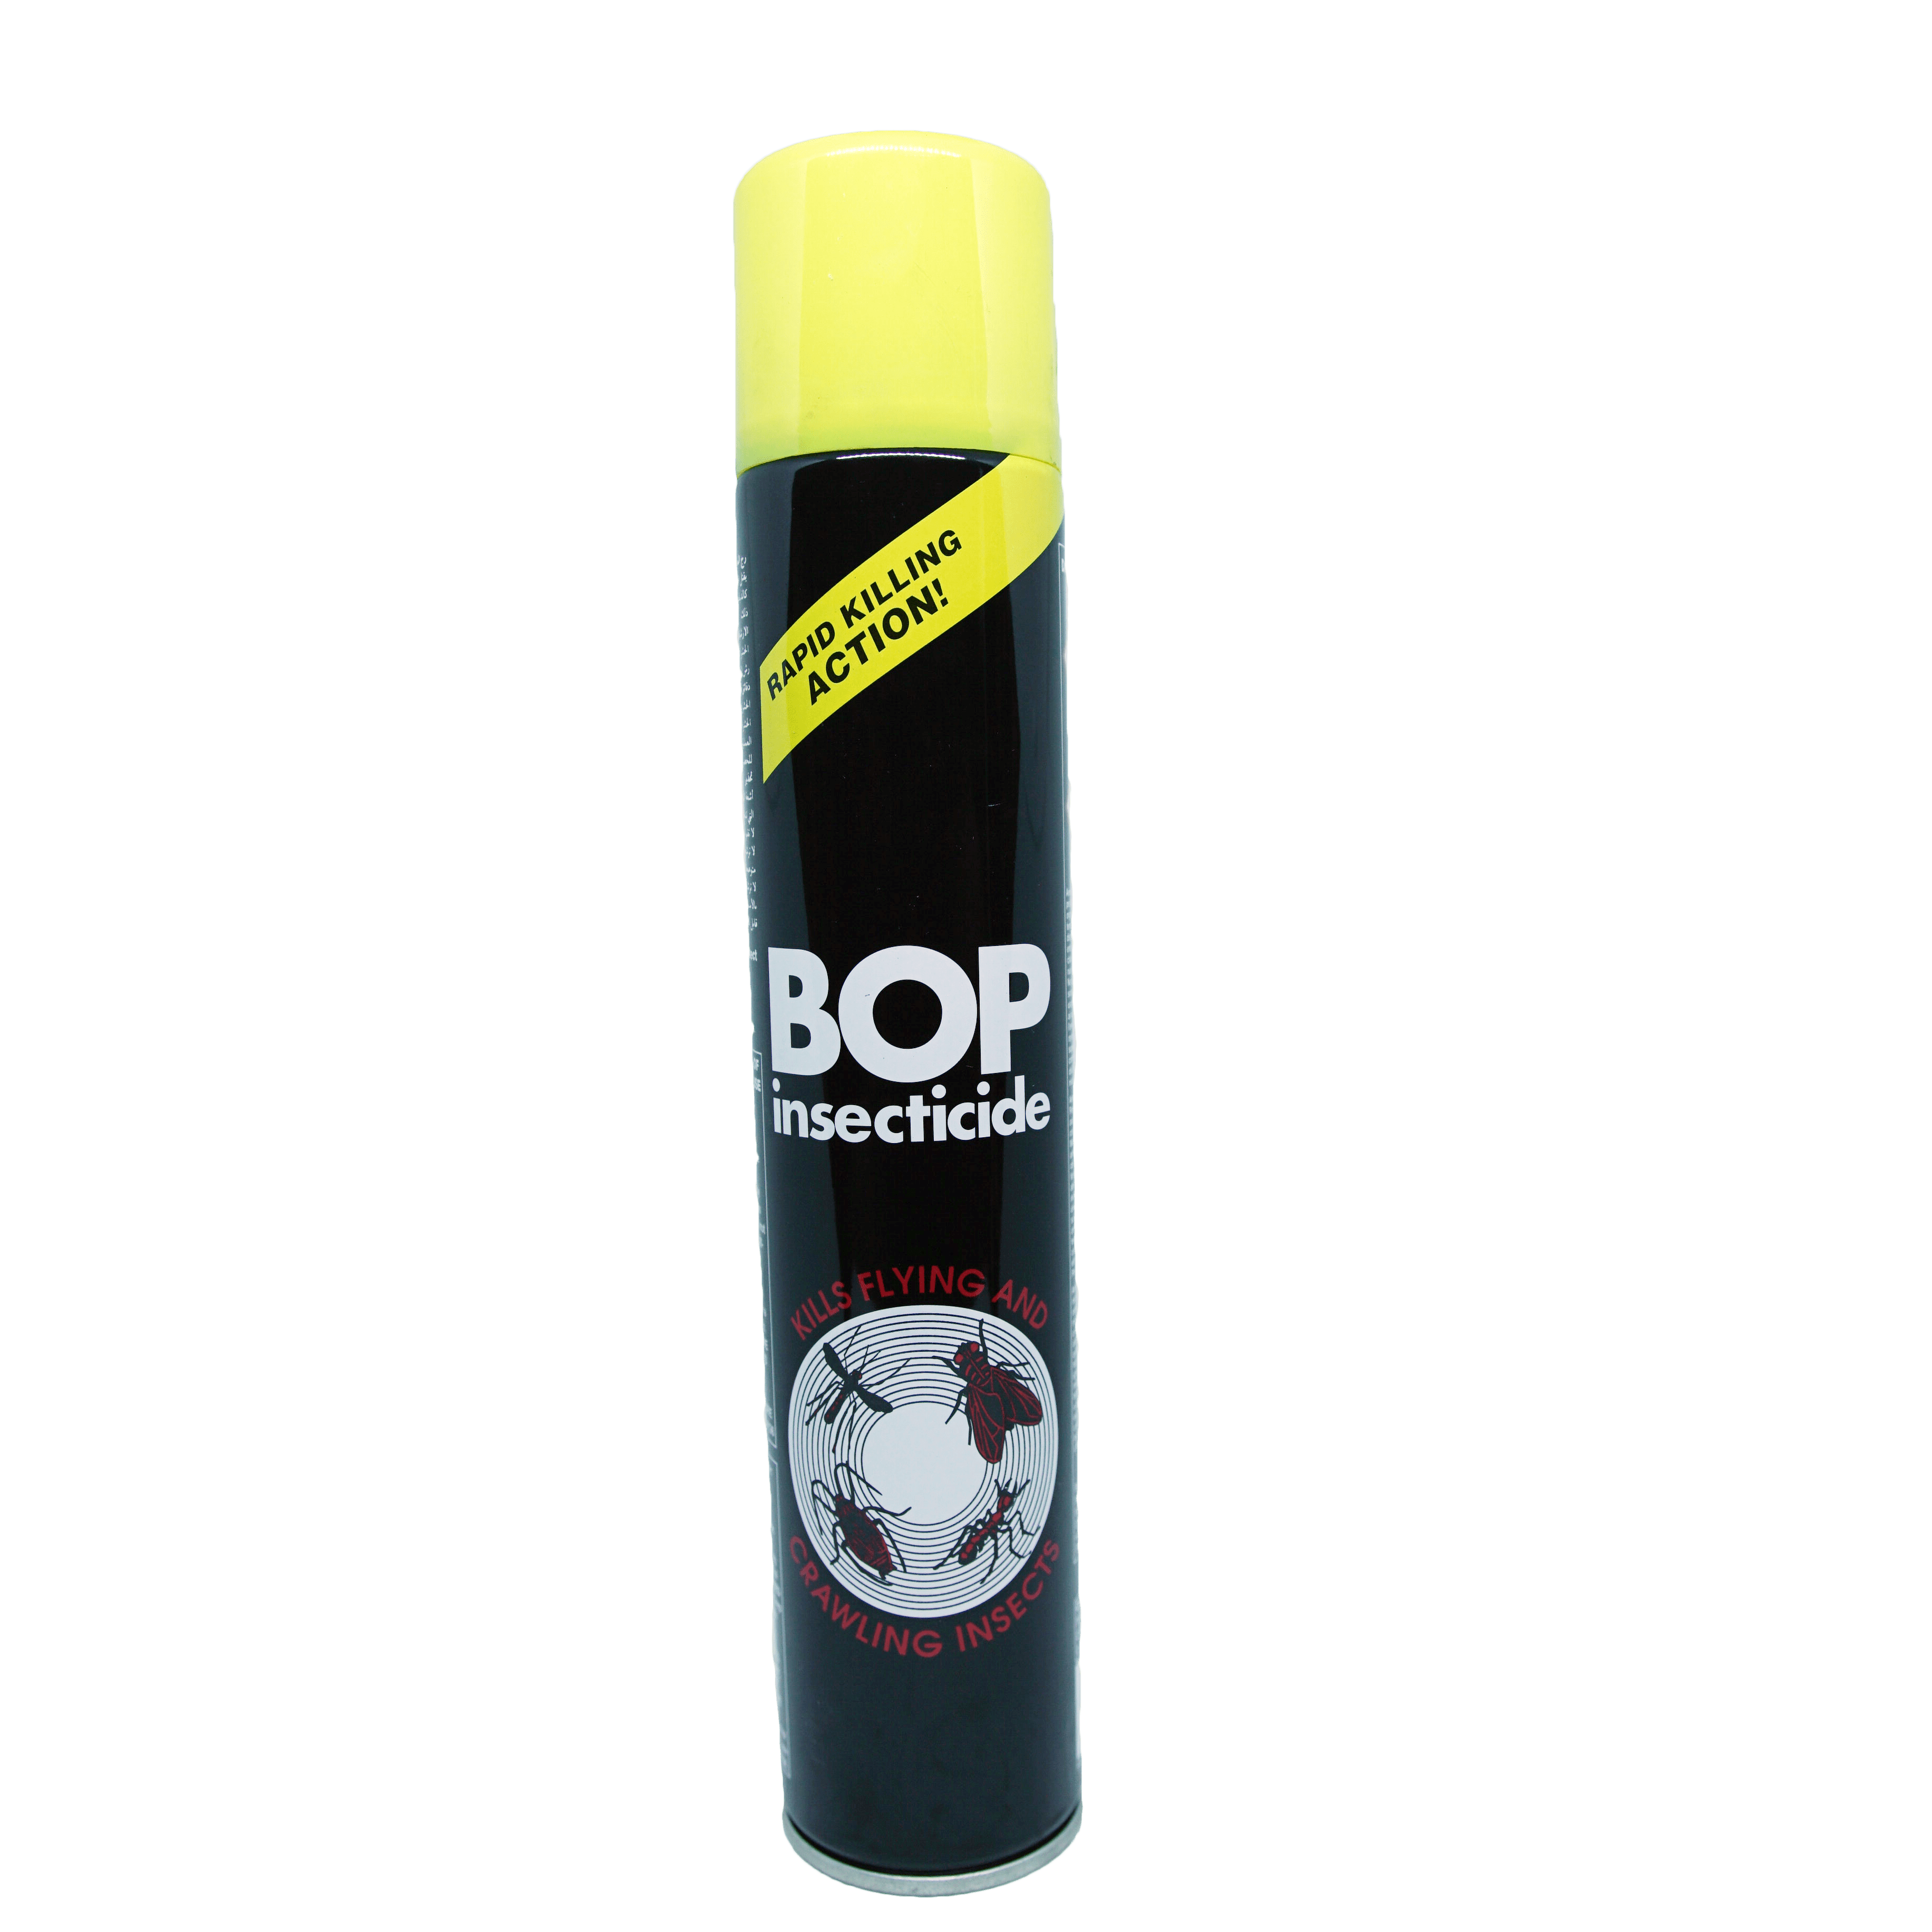 BOP Insecticide 400 ml, Price: 2500 Rwf, Delivery Fees: 1000 Rwf